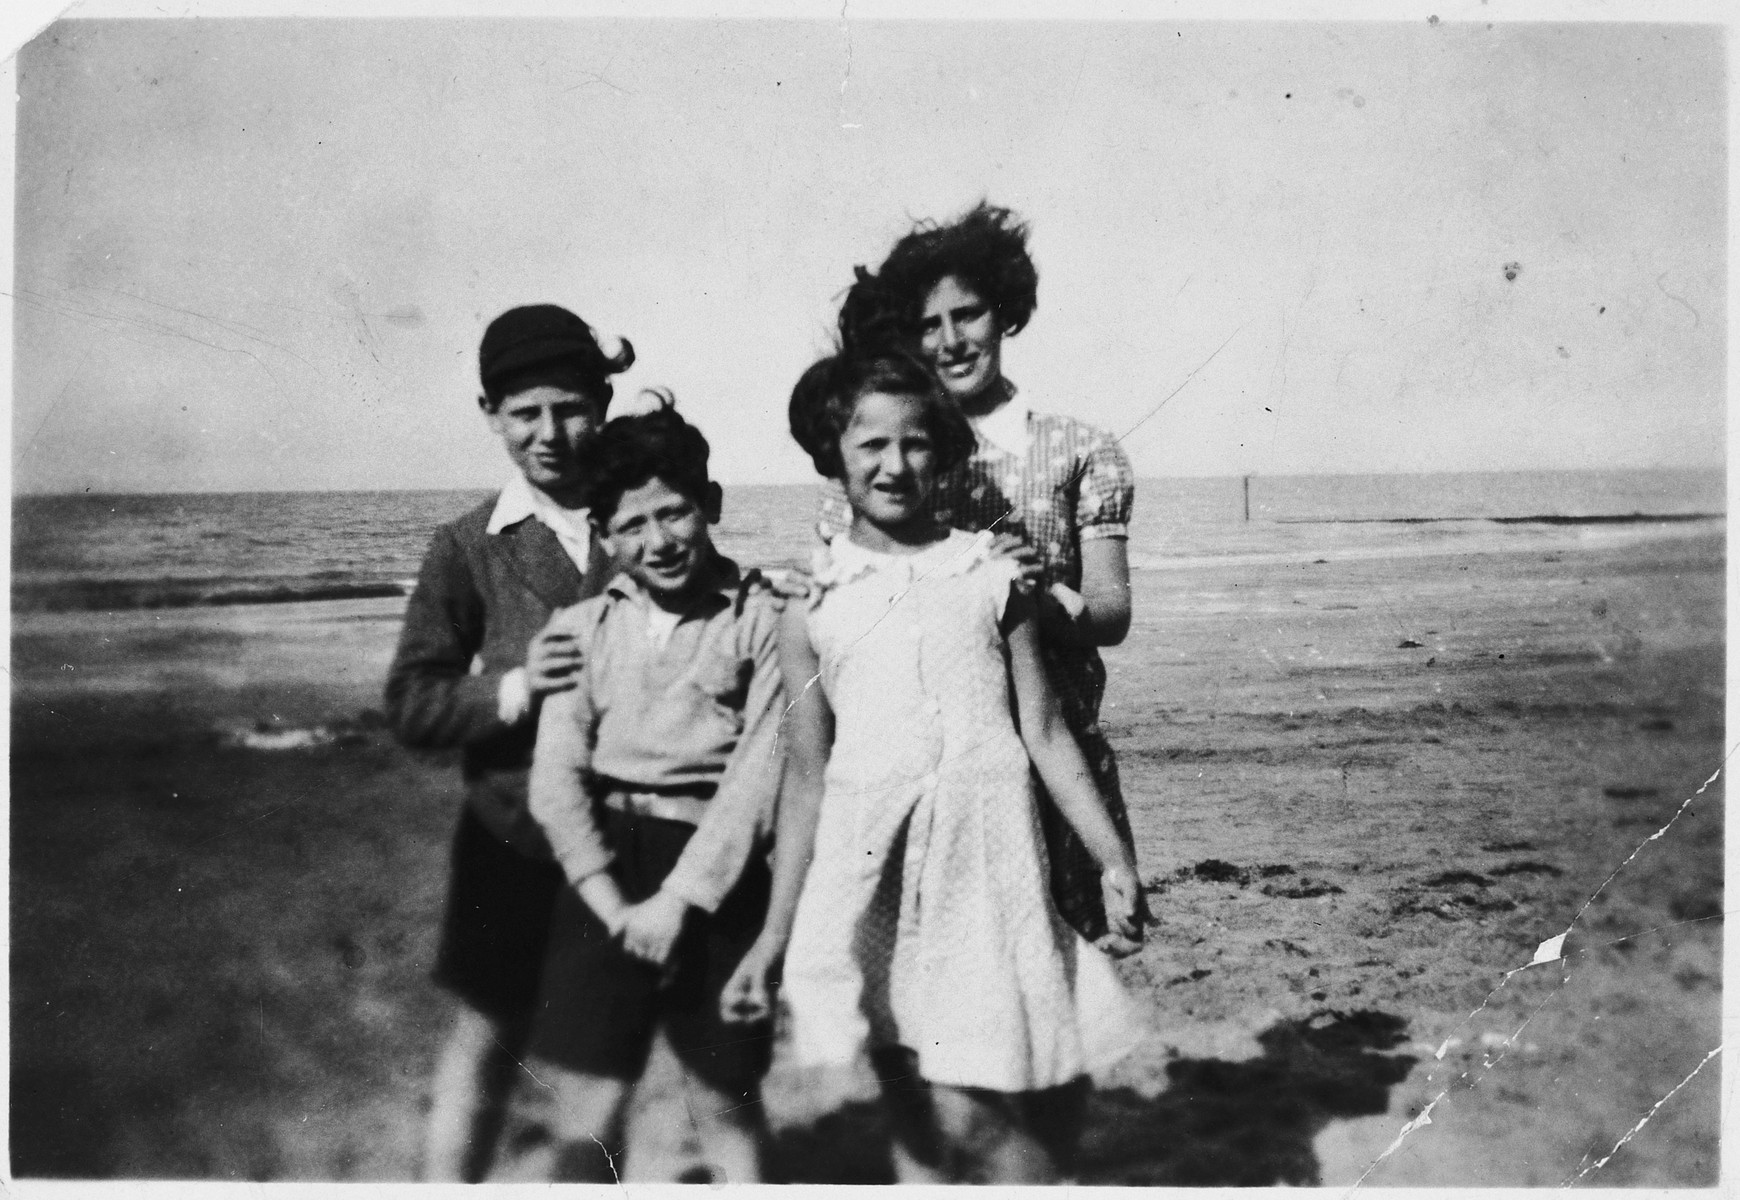 Four siblings pose together on a beach approximately half a year after arriving in England on a Kindertransport.  Pictured are Jacob, Joseph, Anni and Henni Zajac.